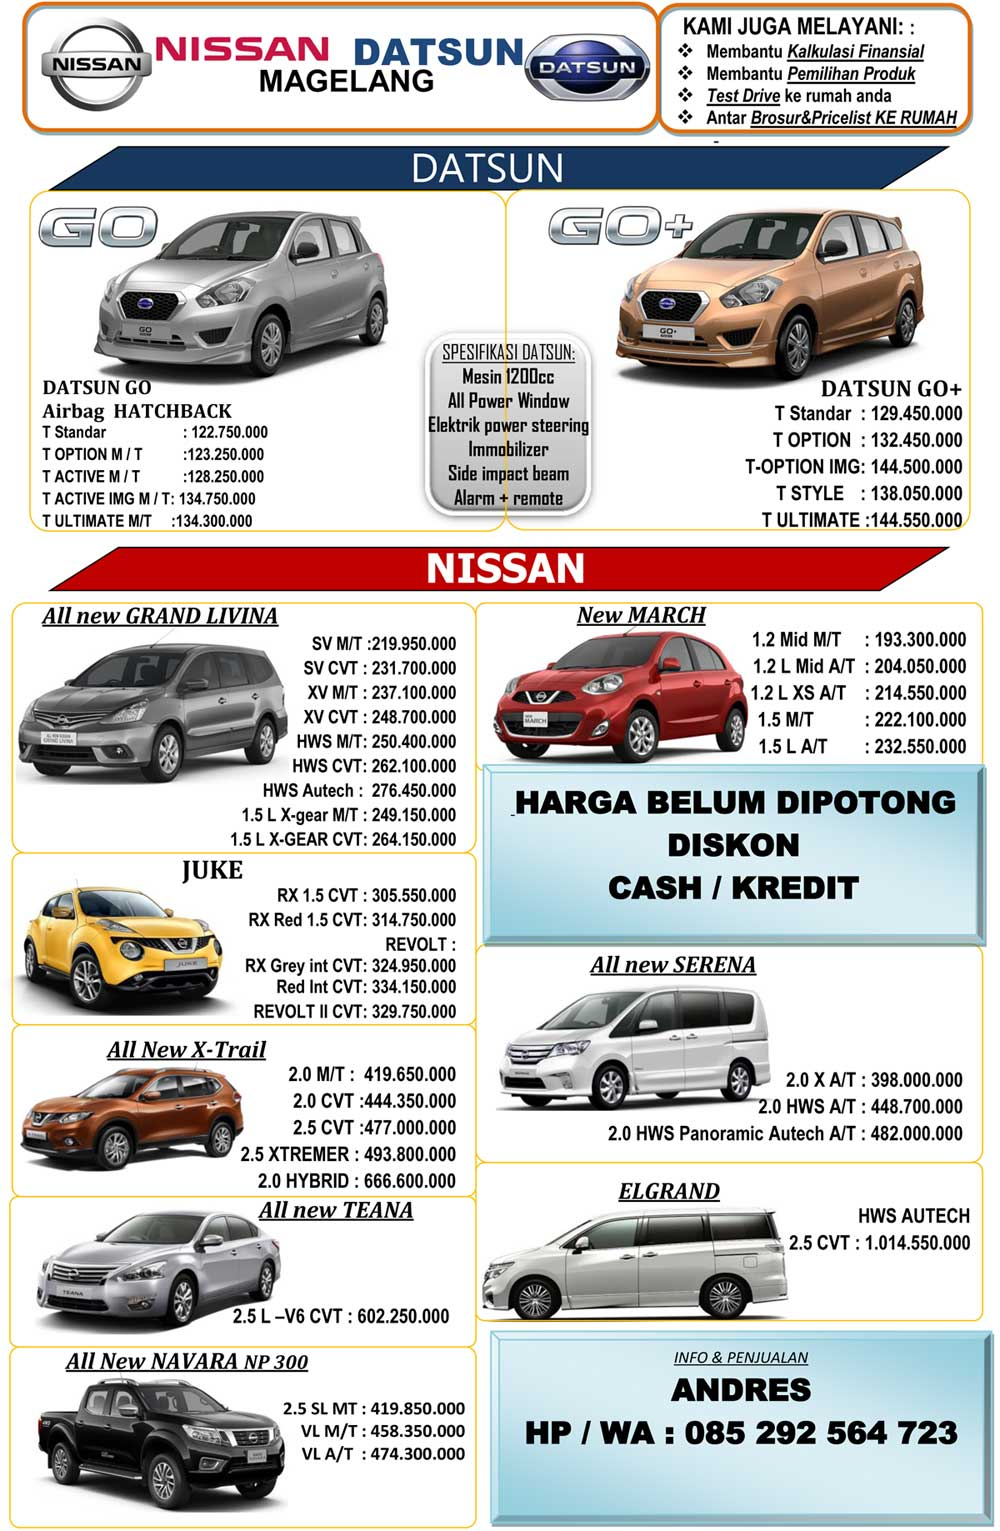 Harga Mobil Nissan By Andreas